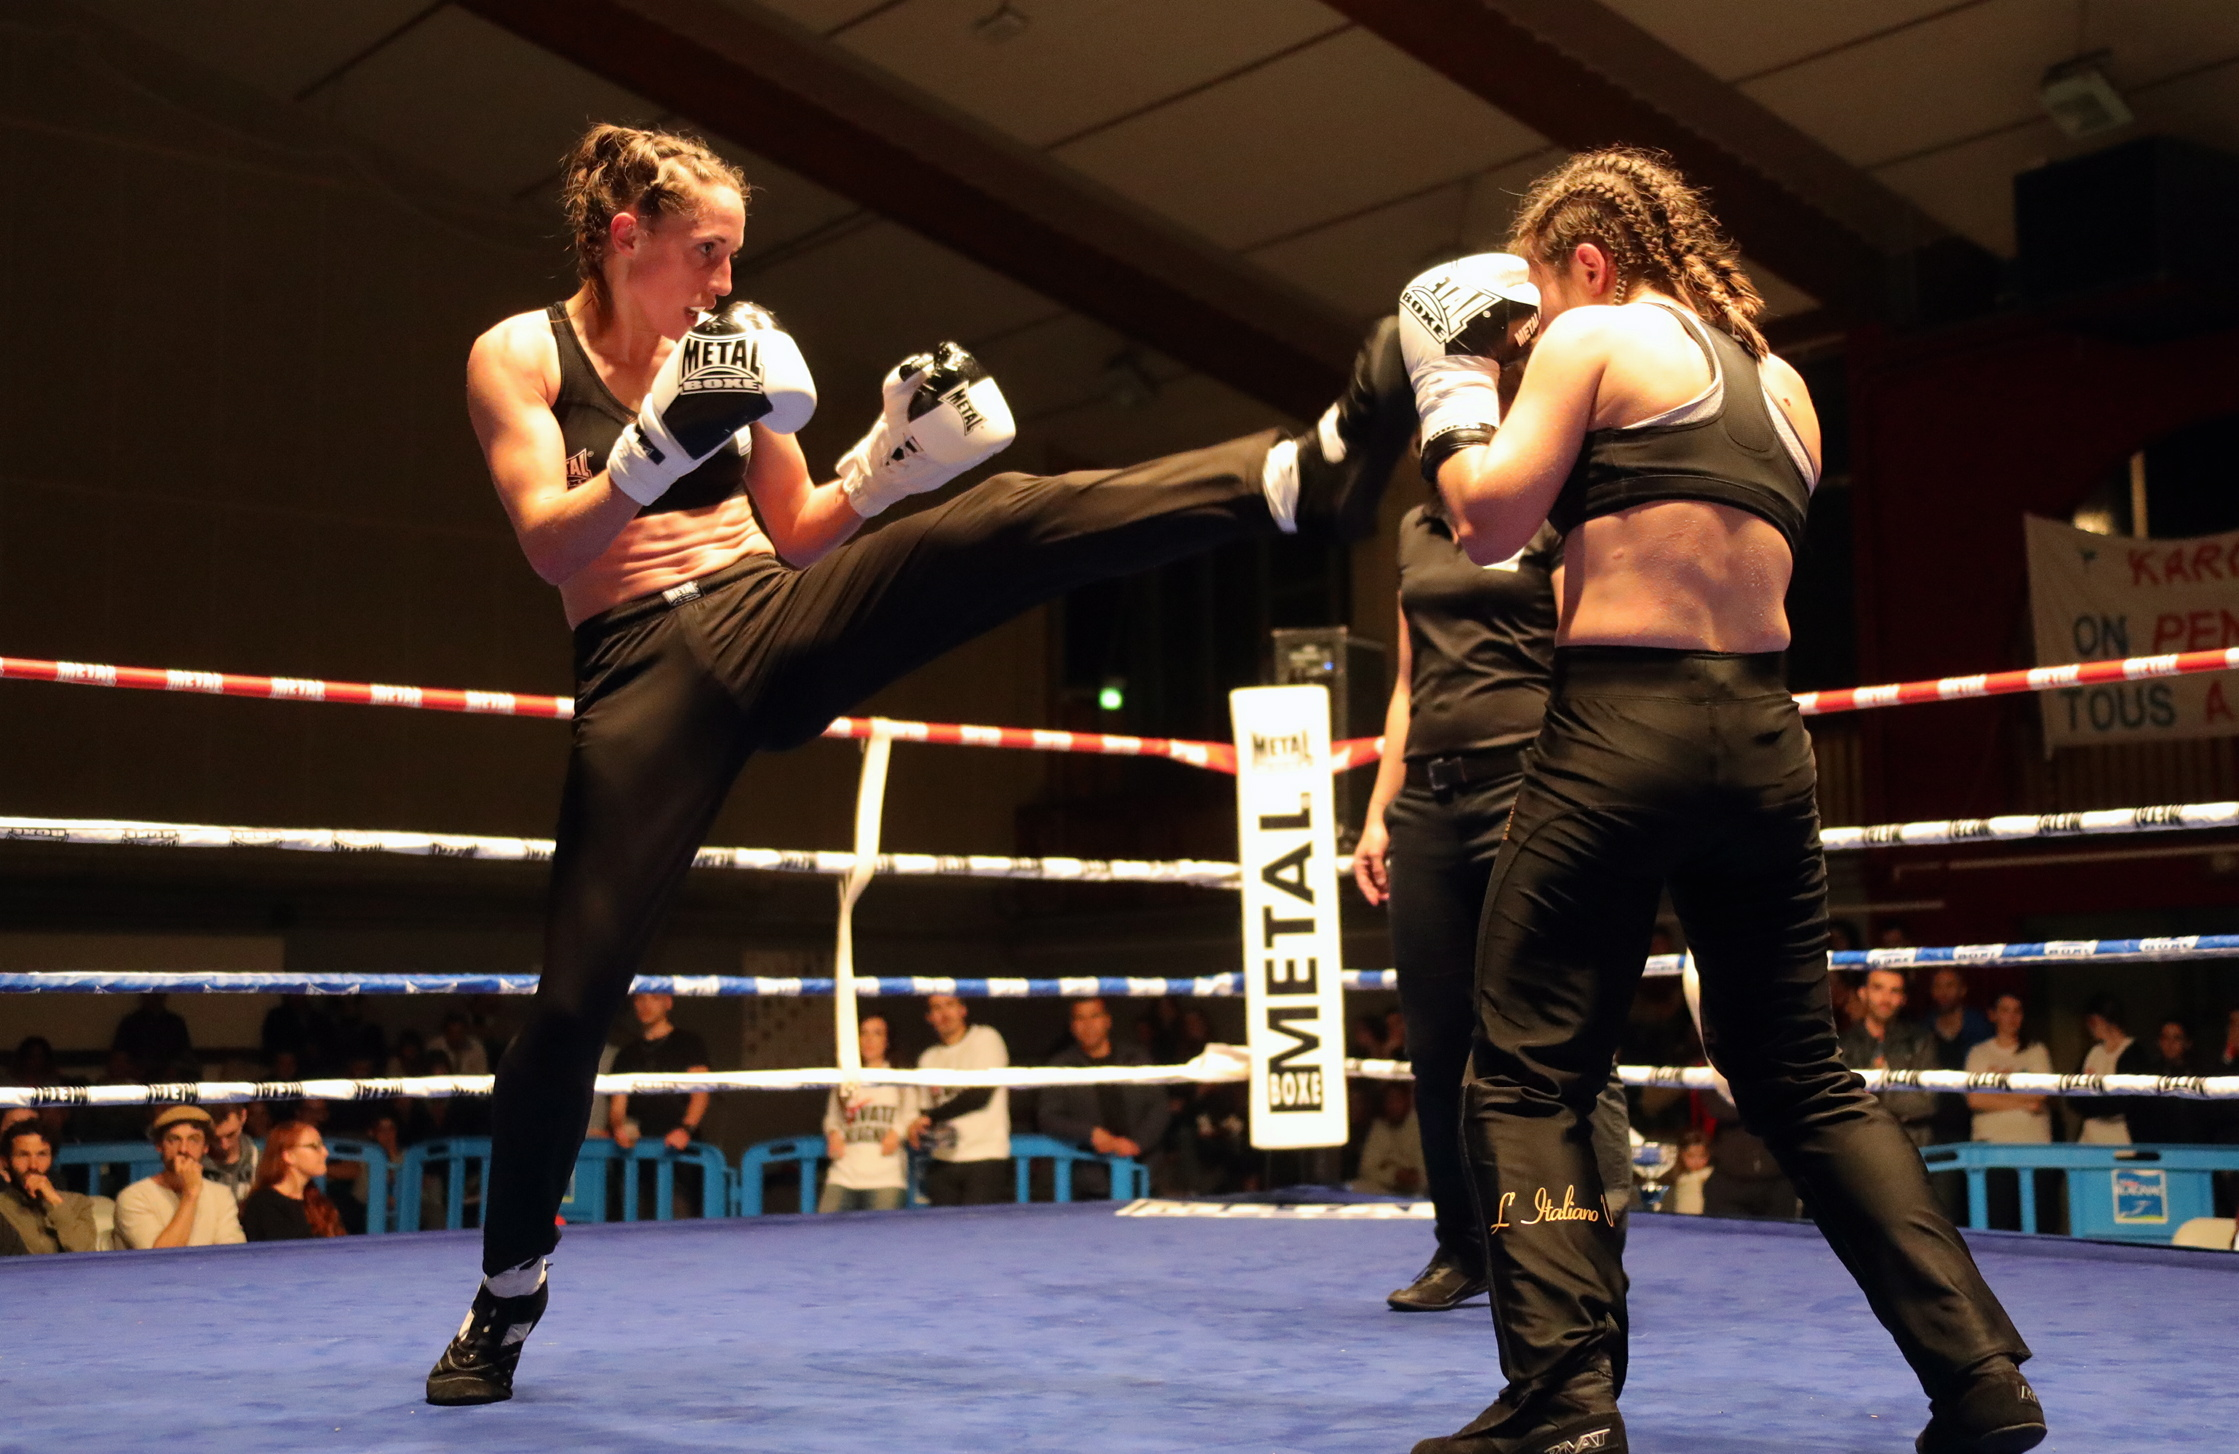 photos gala de boxe  savate à Blagnac